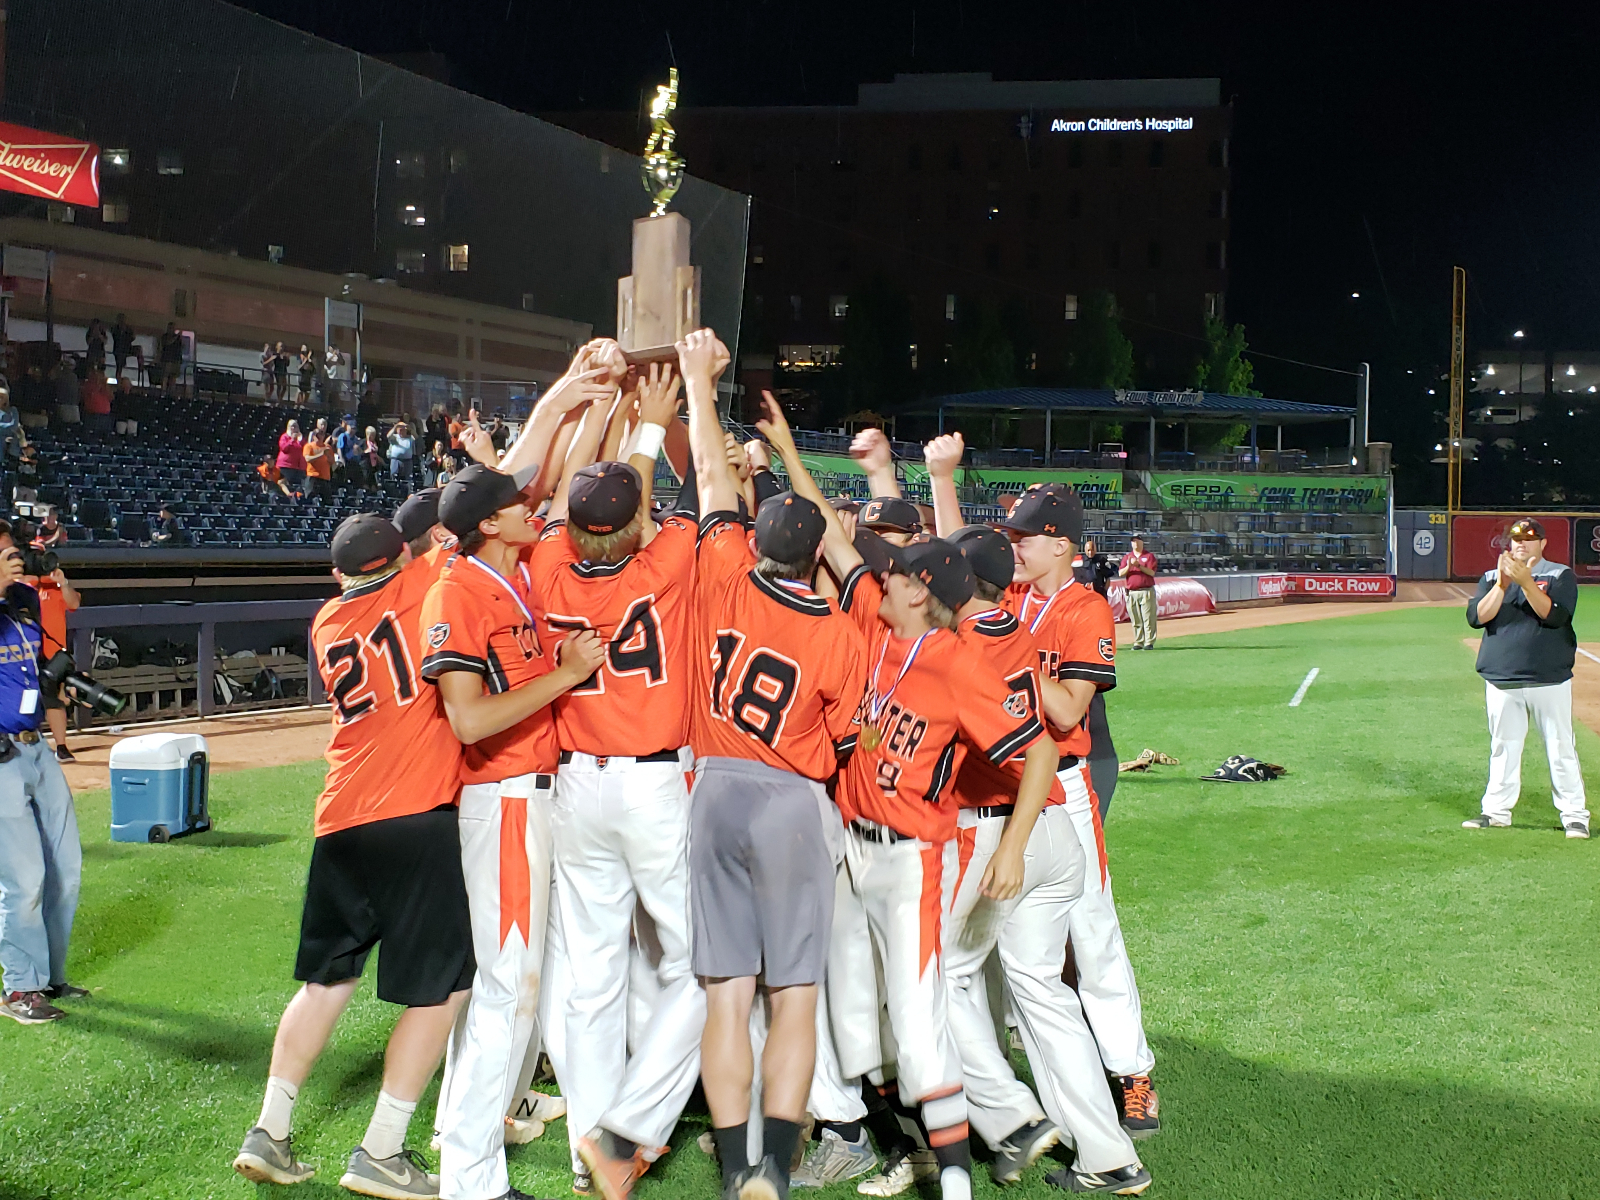 Coldwater Baseball picks up the schools 7th State Baseball Title